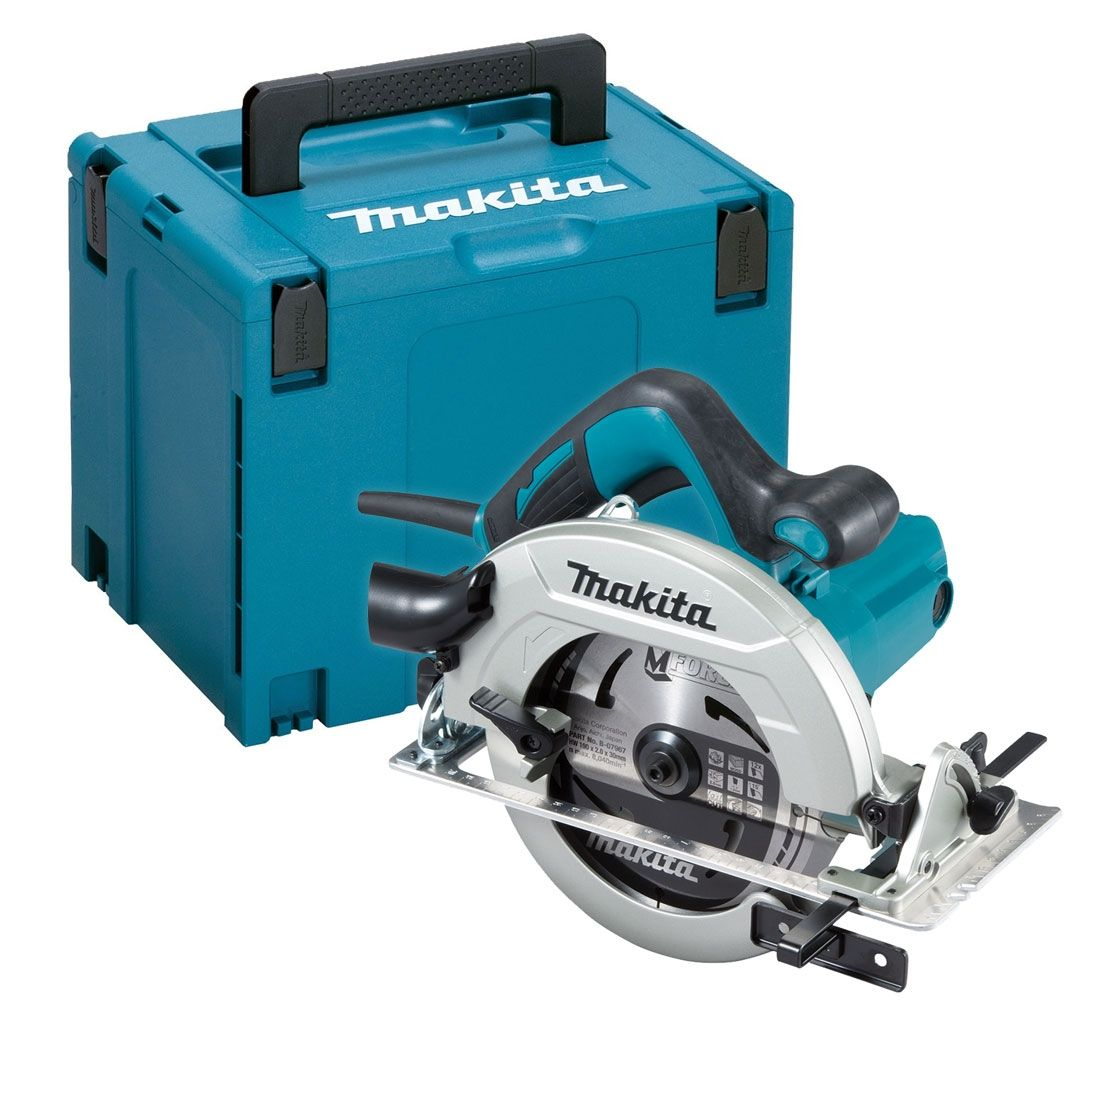 Makita 190mm 1600w Circular Saw 240v MAKHS7611J   Rear dust exhaust port exhausts sawdust backward preventing it from scattering around   toolforce.ie